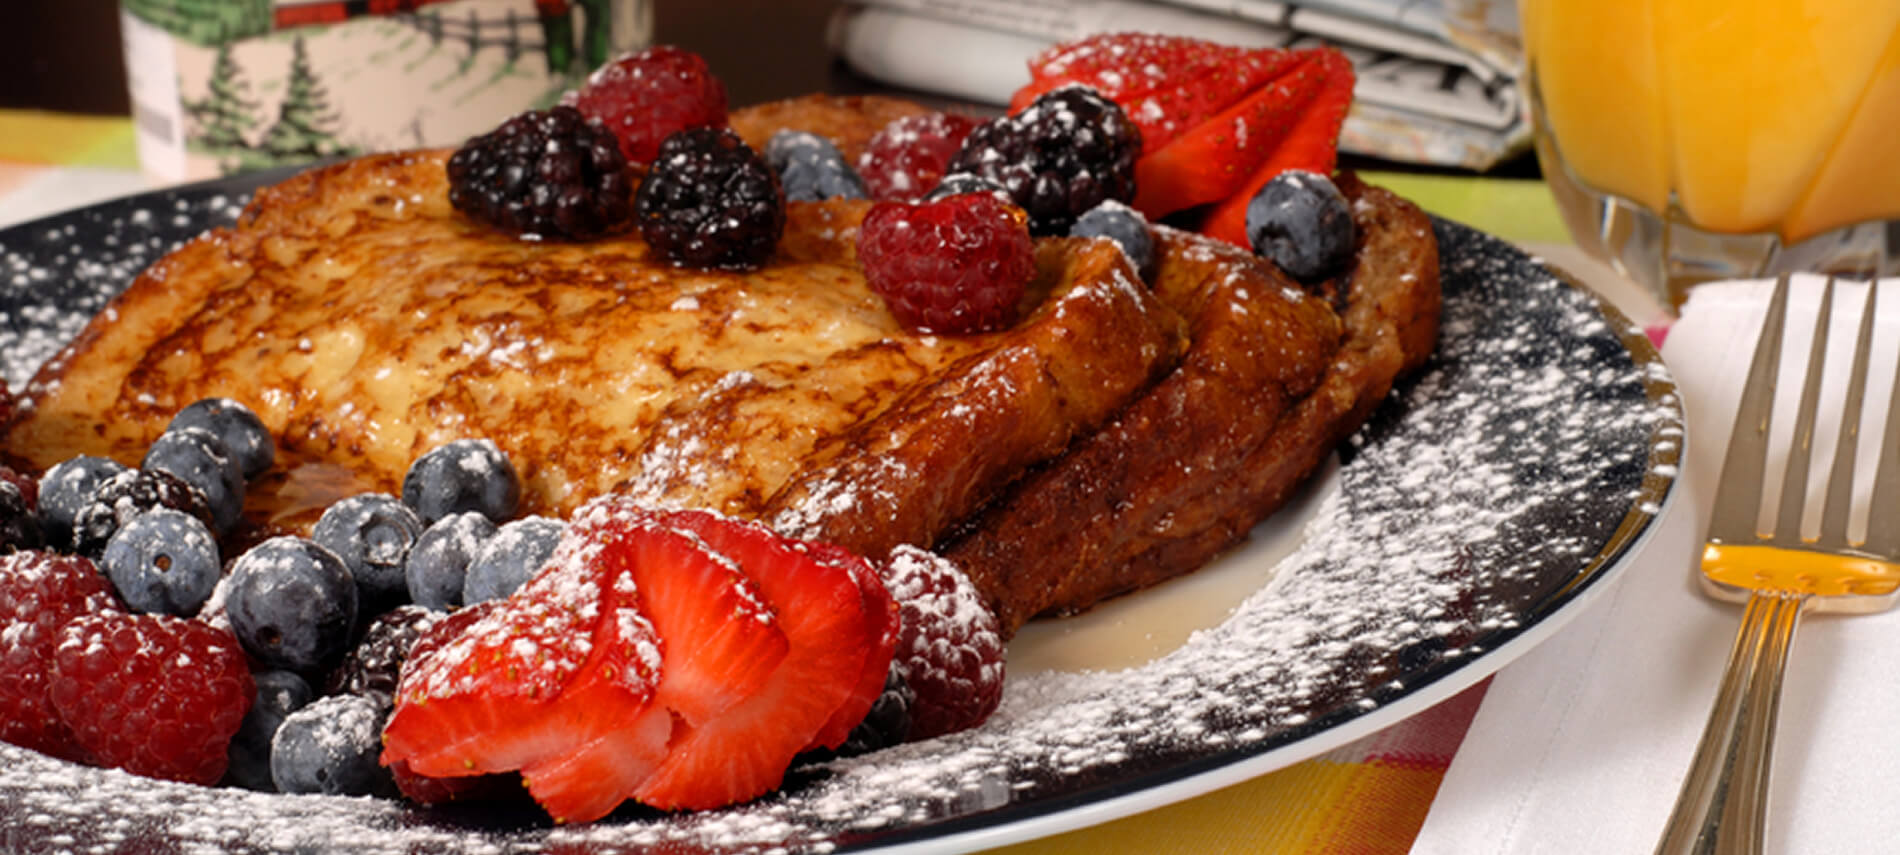 French toast with strawberries on a blue plate with orange juice.